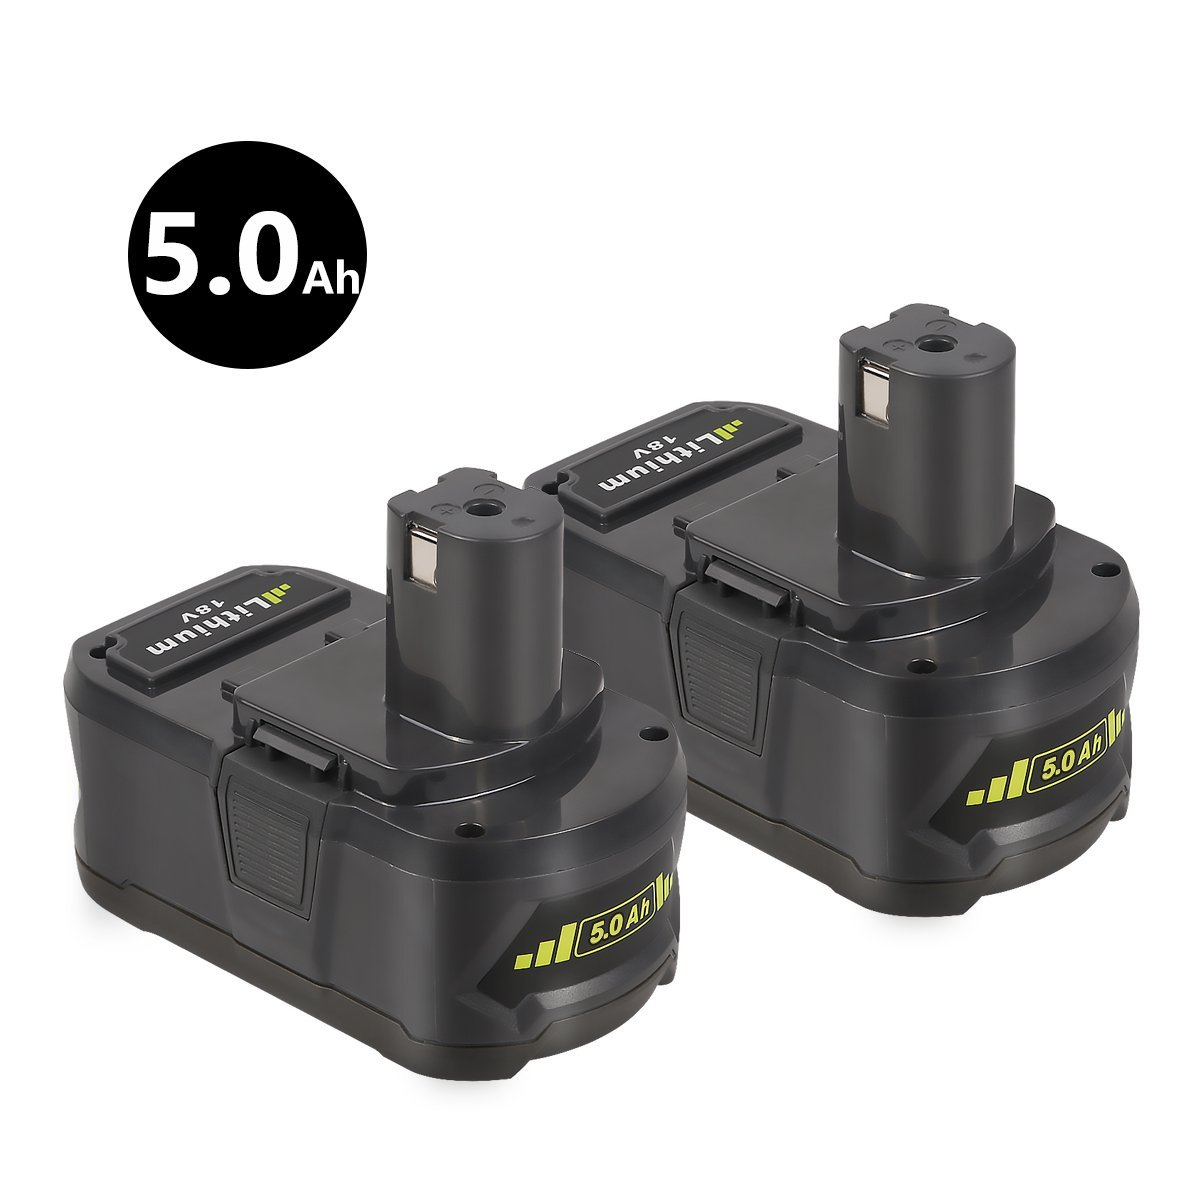 2 Pack New 18V 5.0Ah Replacement Power Tool Battery for Ryobi 18-Volt ONE+  P241, P246, P250, P2500, P2600, P2603, P271